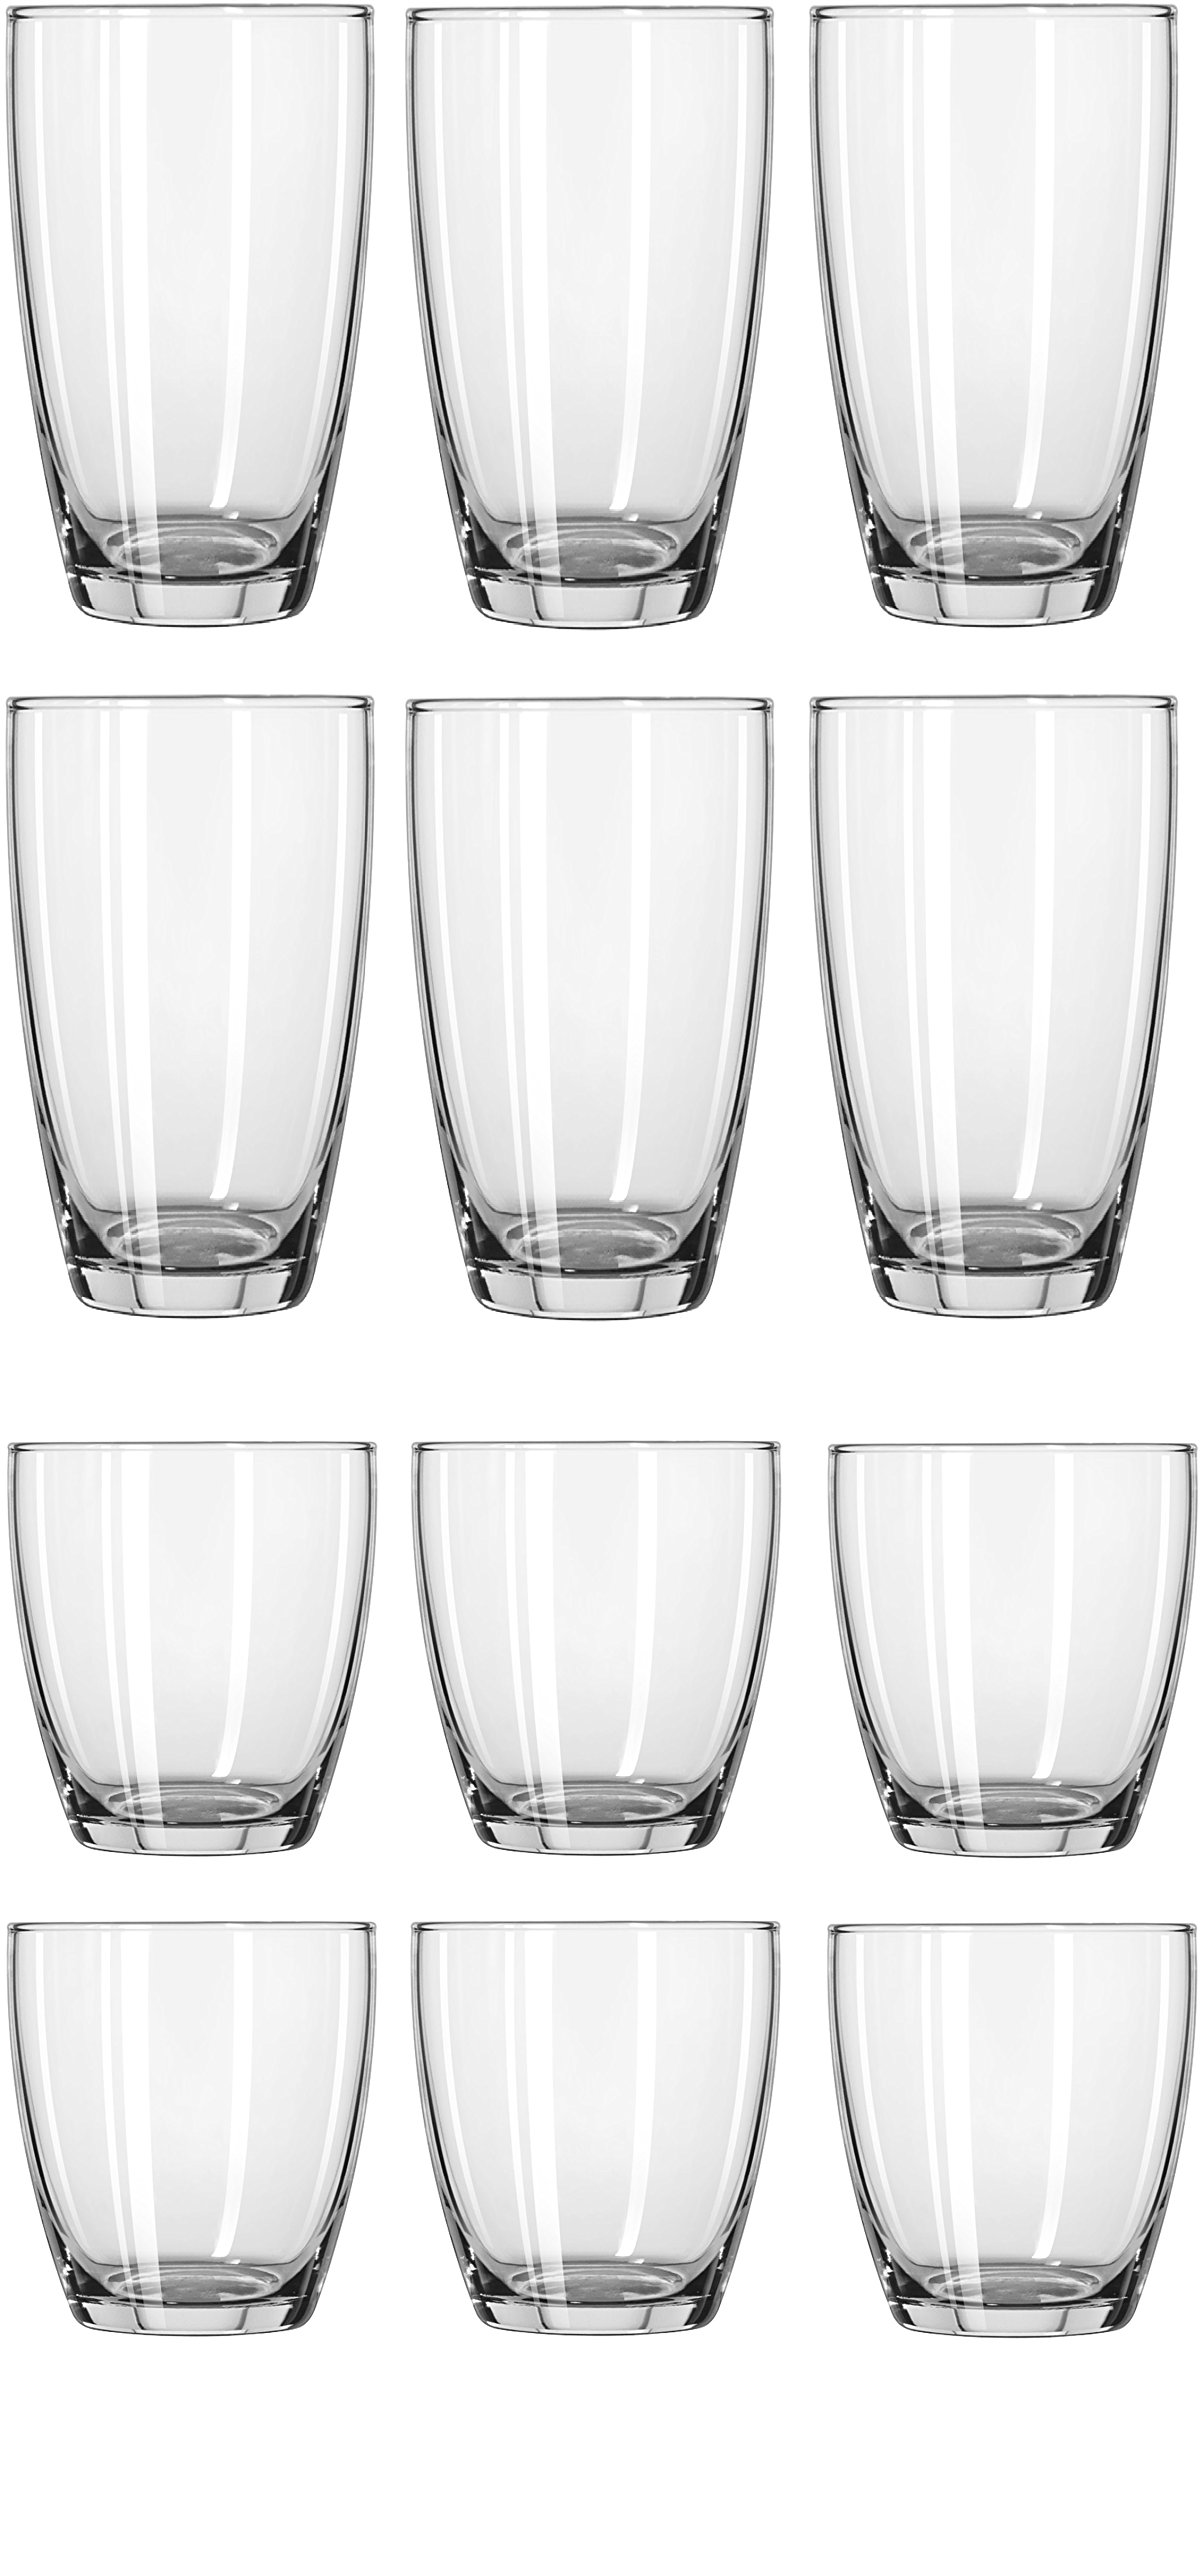 Circleware 44539 Smooth Huge Set of 12, 6-16oz Drinking Glasses & 6-13oz Whiskey Glass, Kitchen Glassware for Water, Beer, Wine Liquor Beverage, 16oz&13oz, Smooth 12pc by Circleware (Image #2)